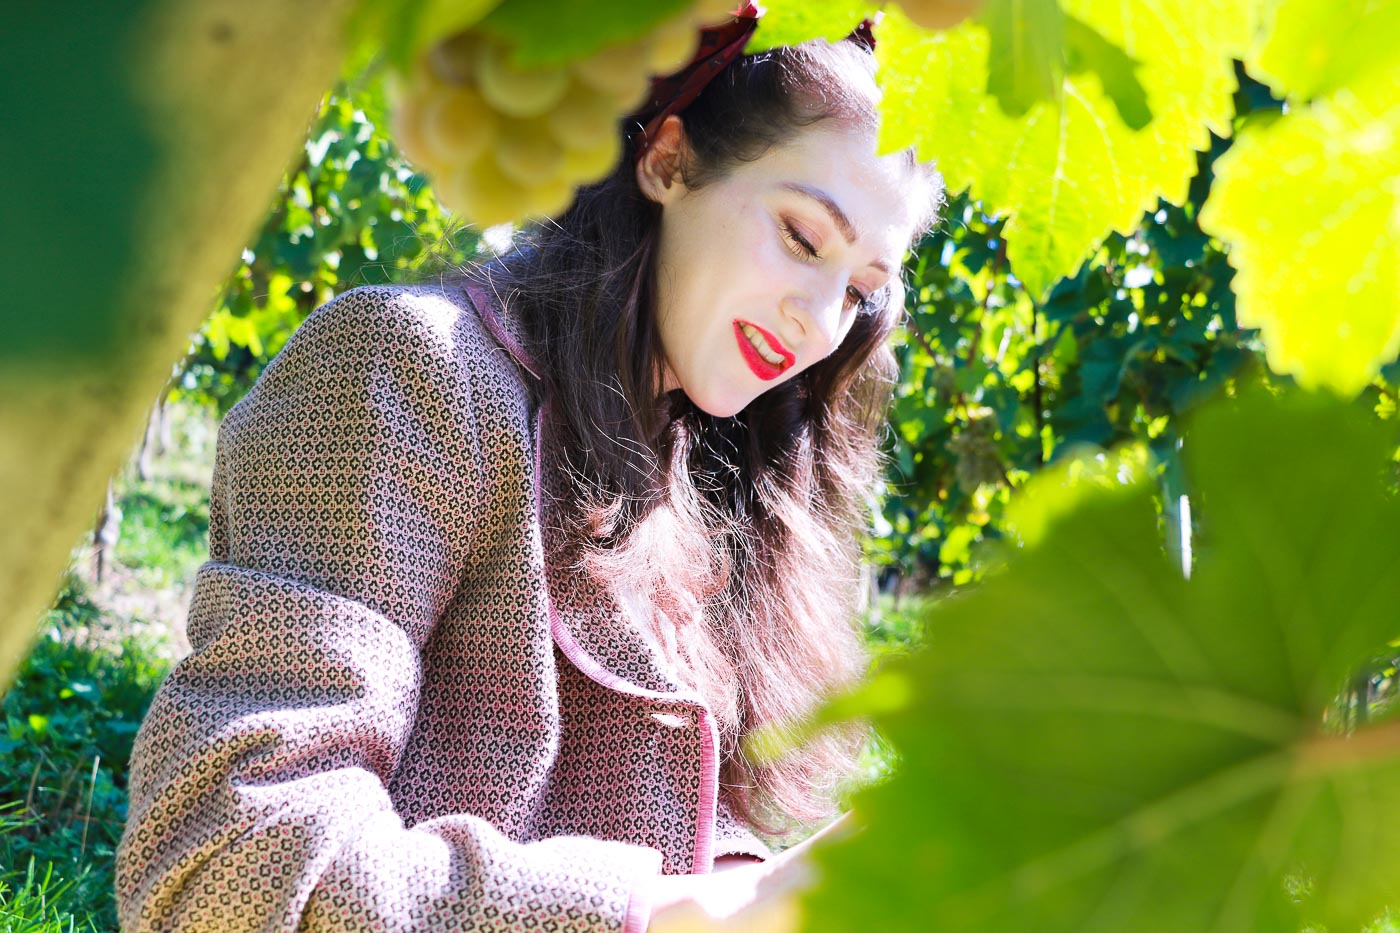 red lipstick in vineyard